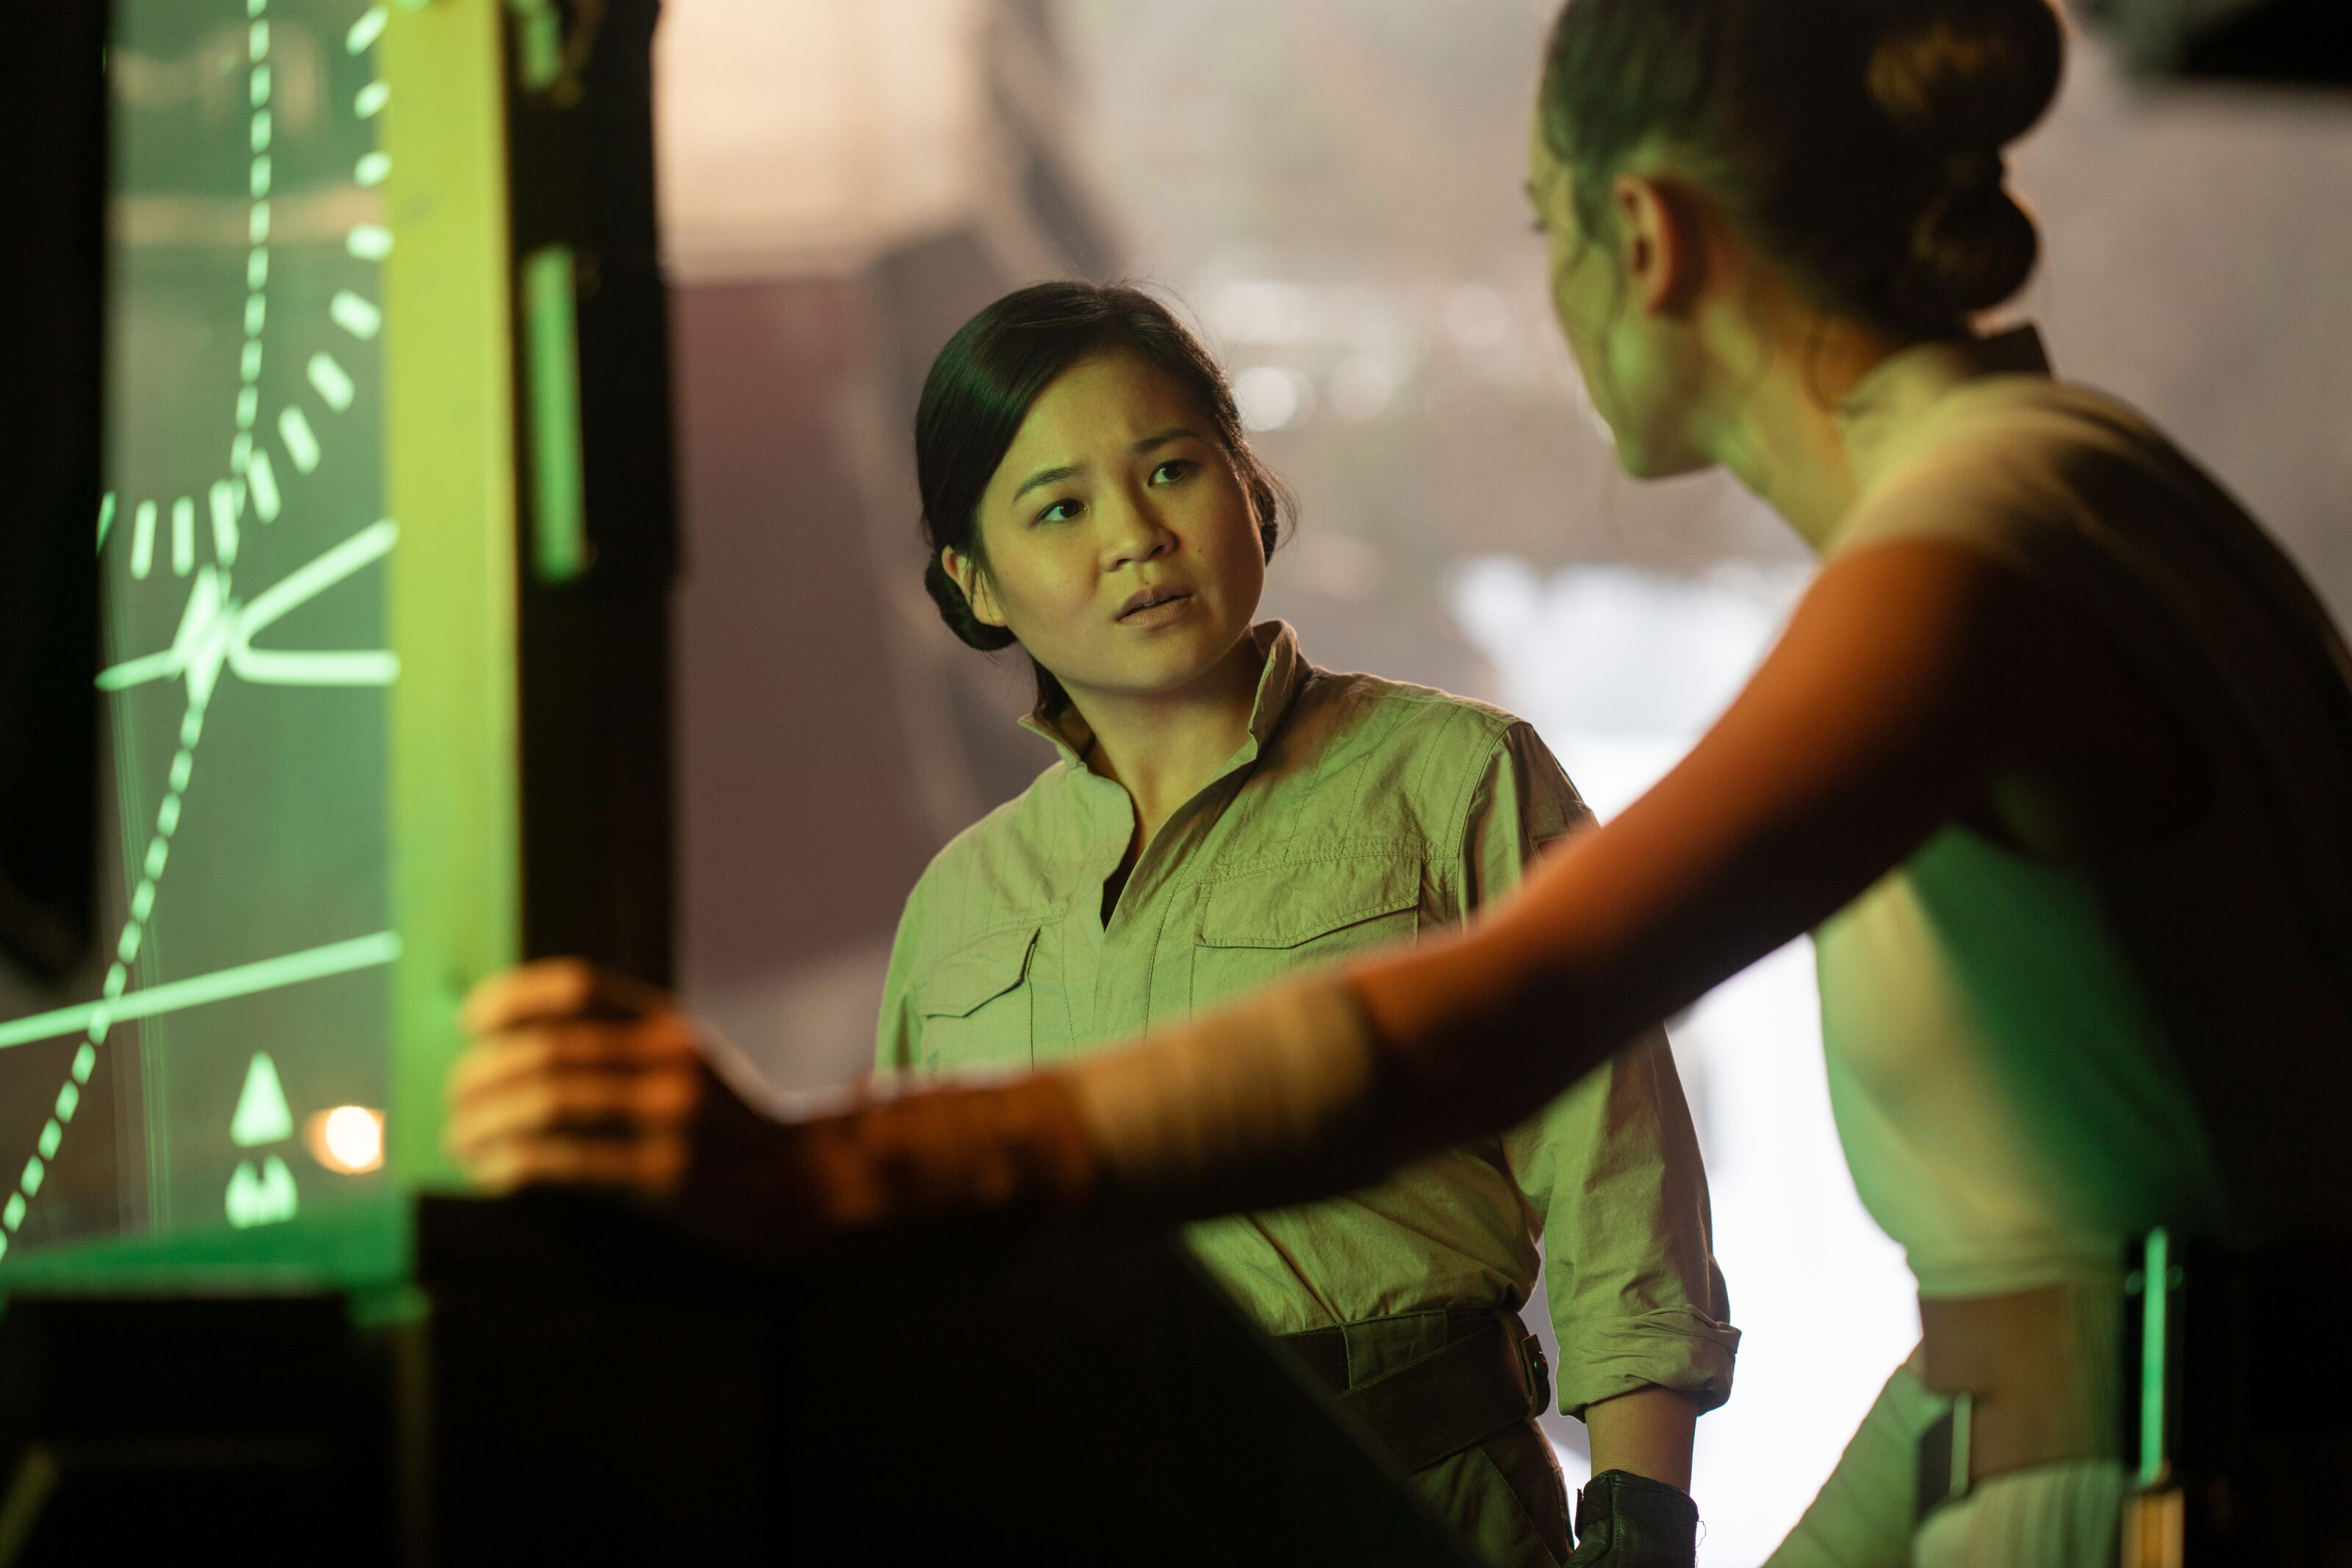 J.J. Abrams let Rose Tico down, not to mention the rest of us